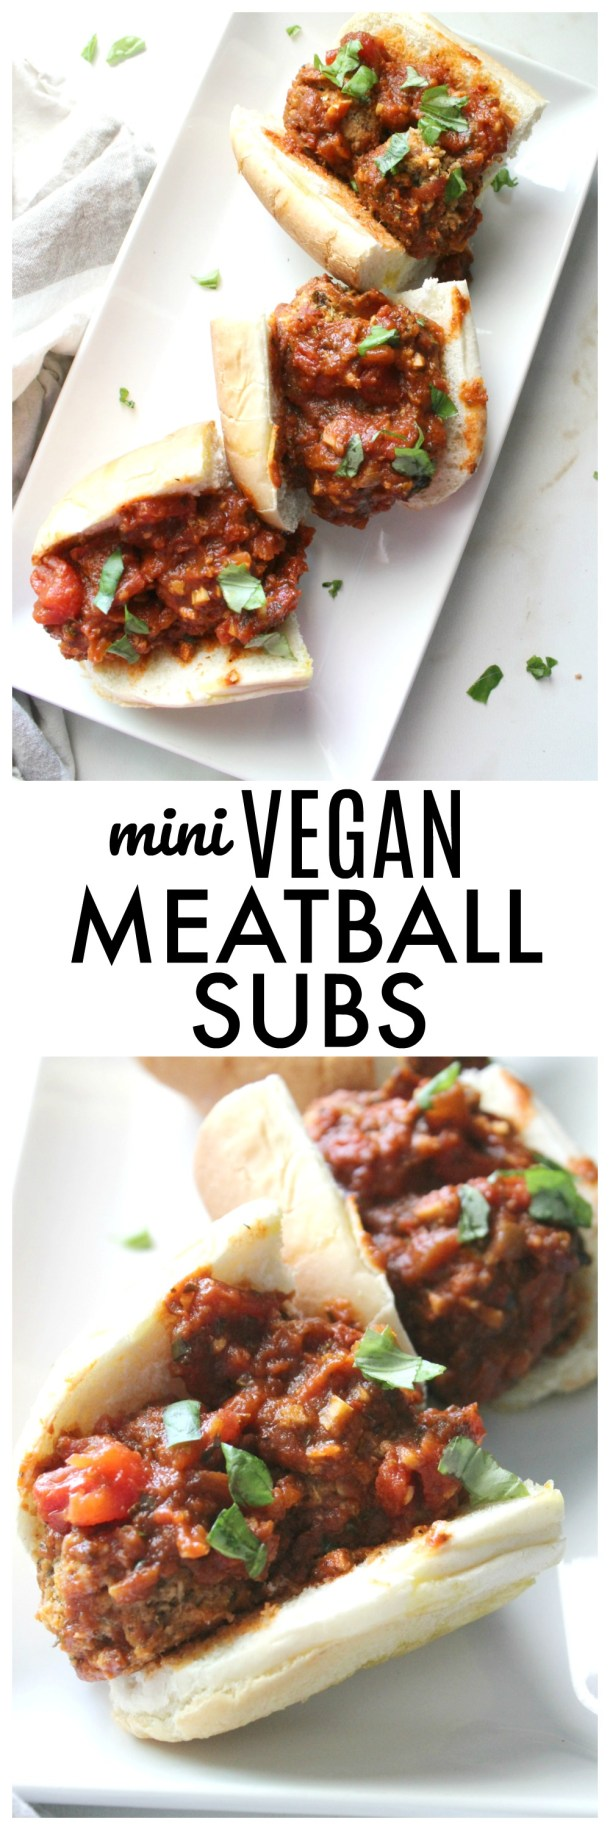 Cauliflower meatballs are tossed in a simple marinara sauce before being layered in toasted rolls to make these Mini Vegan Meatball Subs. Great for parties | ThisSavoryVegan.com #thissavoryvegan #veganmeatballs #kidfriendly